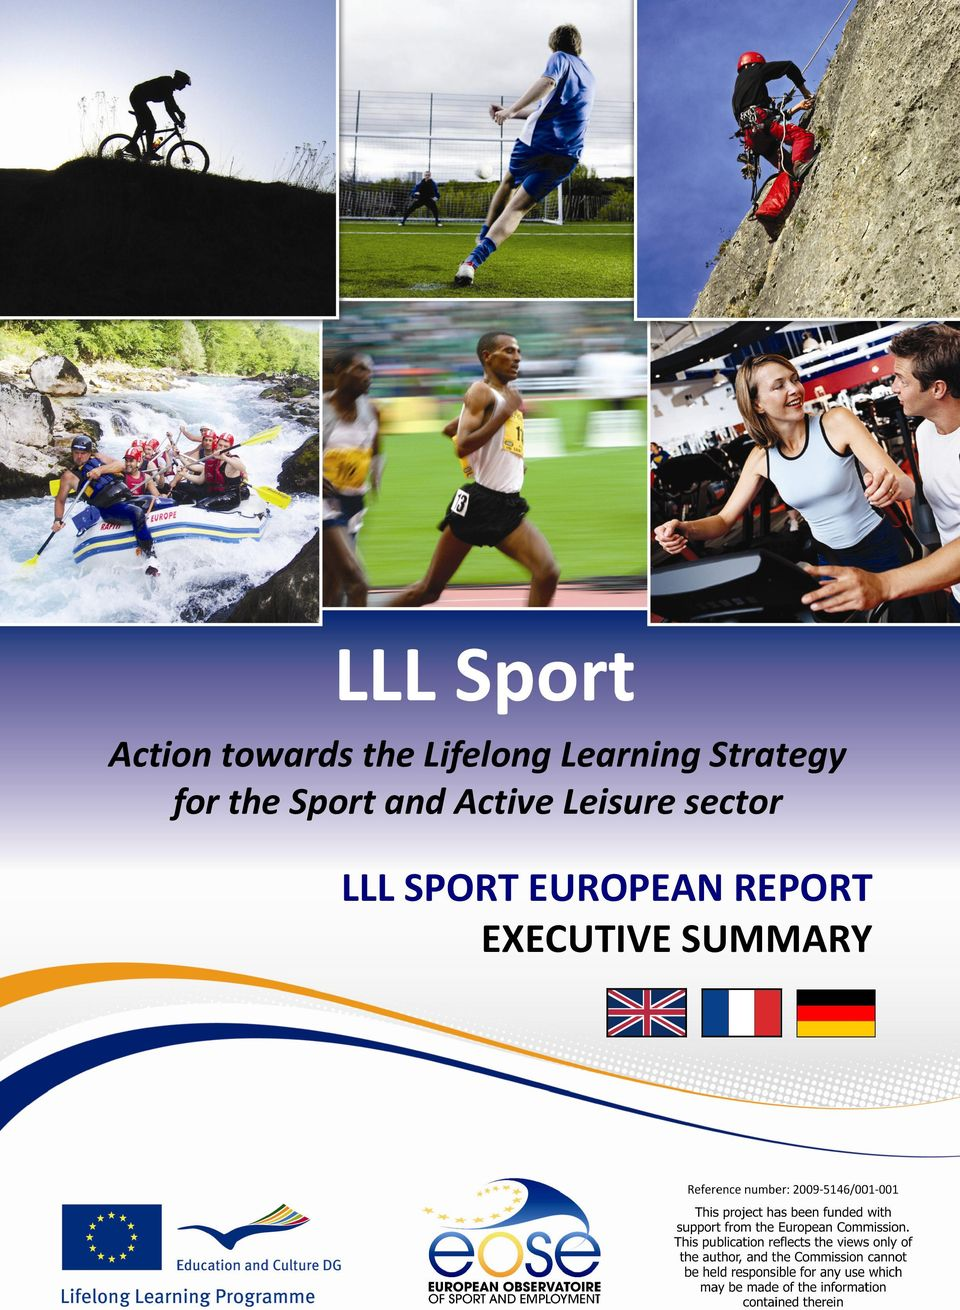 Leisure sector LLL SPORT EUROPEAN REPORT